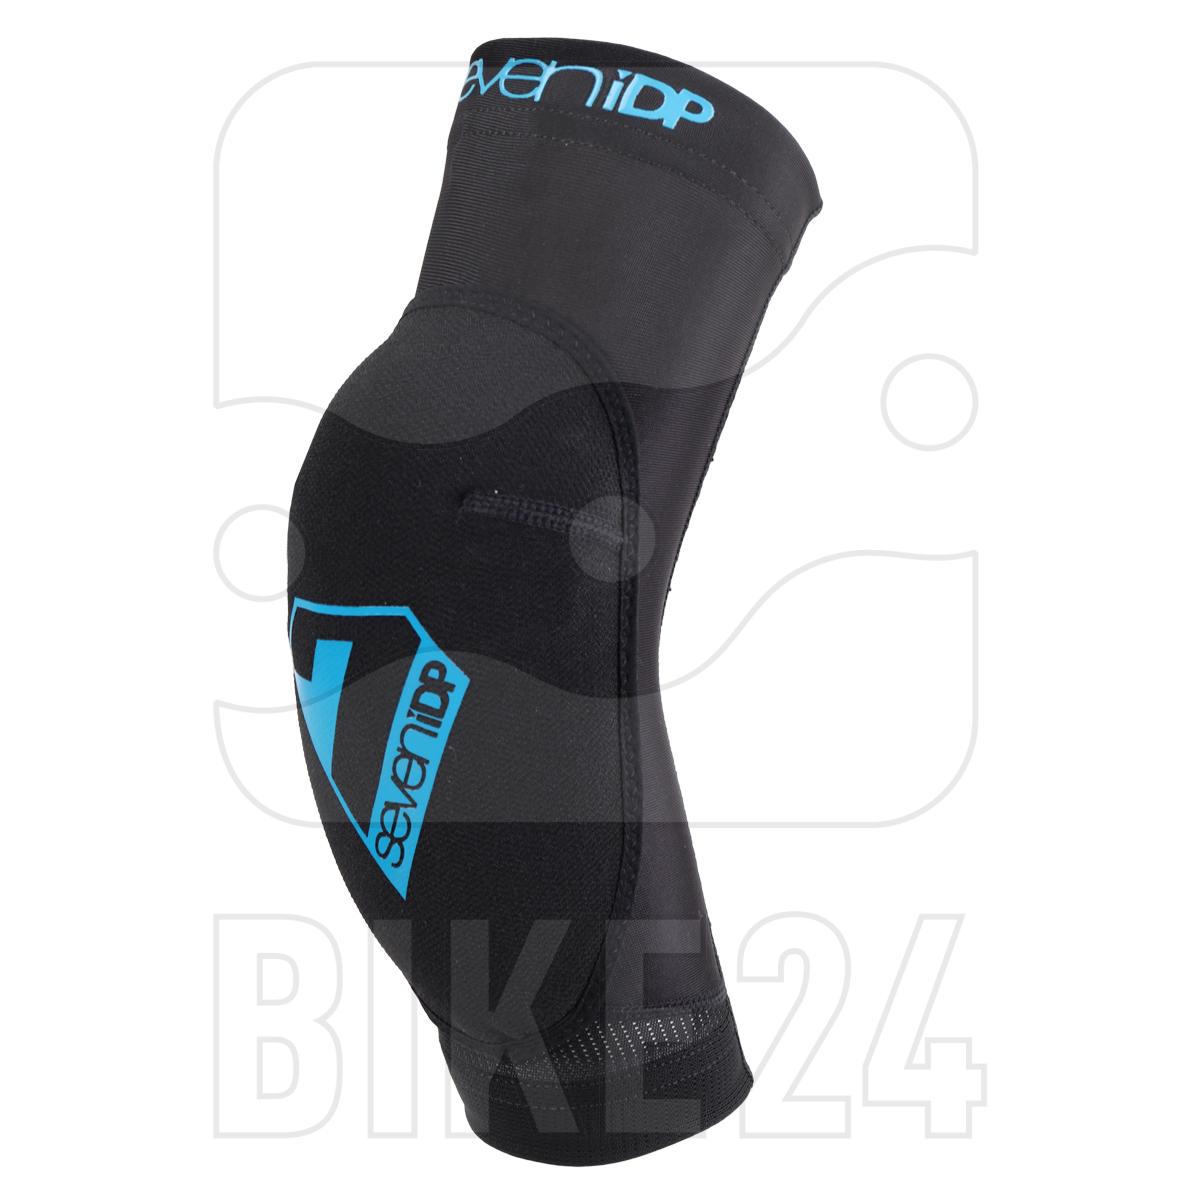 7 Protection 7iDP Transition Youth Elbow Pads - black-blue